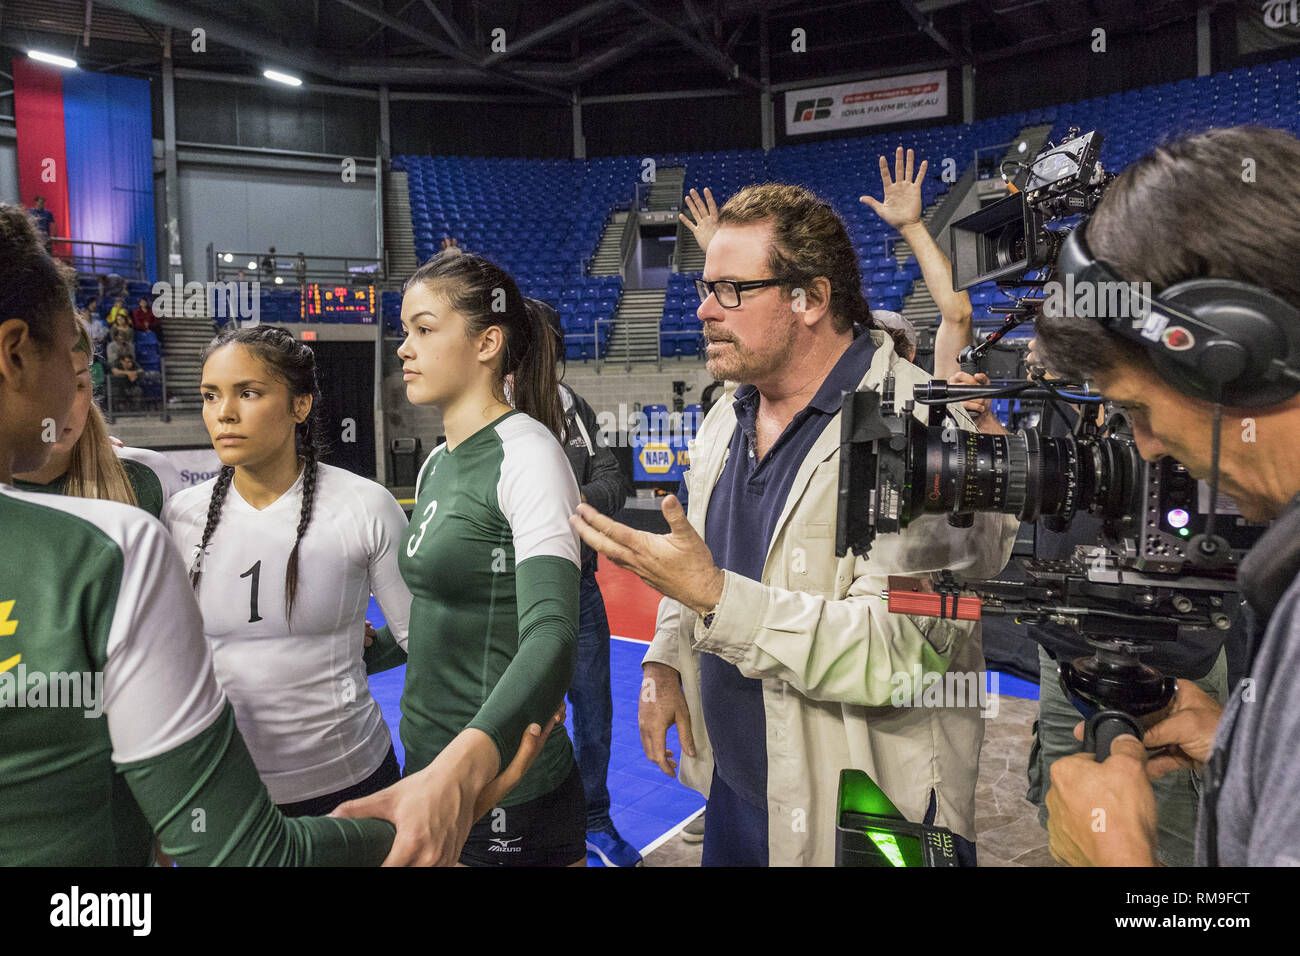 RELEASE DATE: April 6, 2018 TITLE: The Miracle Season STUDIO: LD Entertainment DIRECTOR: Sean McNamara PLOT: After the tragic death of star volleyball player Caroline ''Line'' Found, a team of dispirited high school girls must band together under the guidance of their tough-love coach in hopes of winning the state championship. STARRING: Helen Hunt, Erin Moriarty, William Hurt. (Credit Image: © LD Entertainment/Entertainment Pictures) - Stock Image